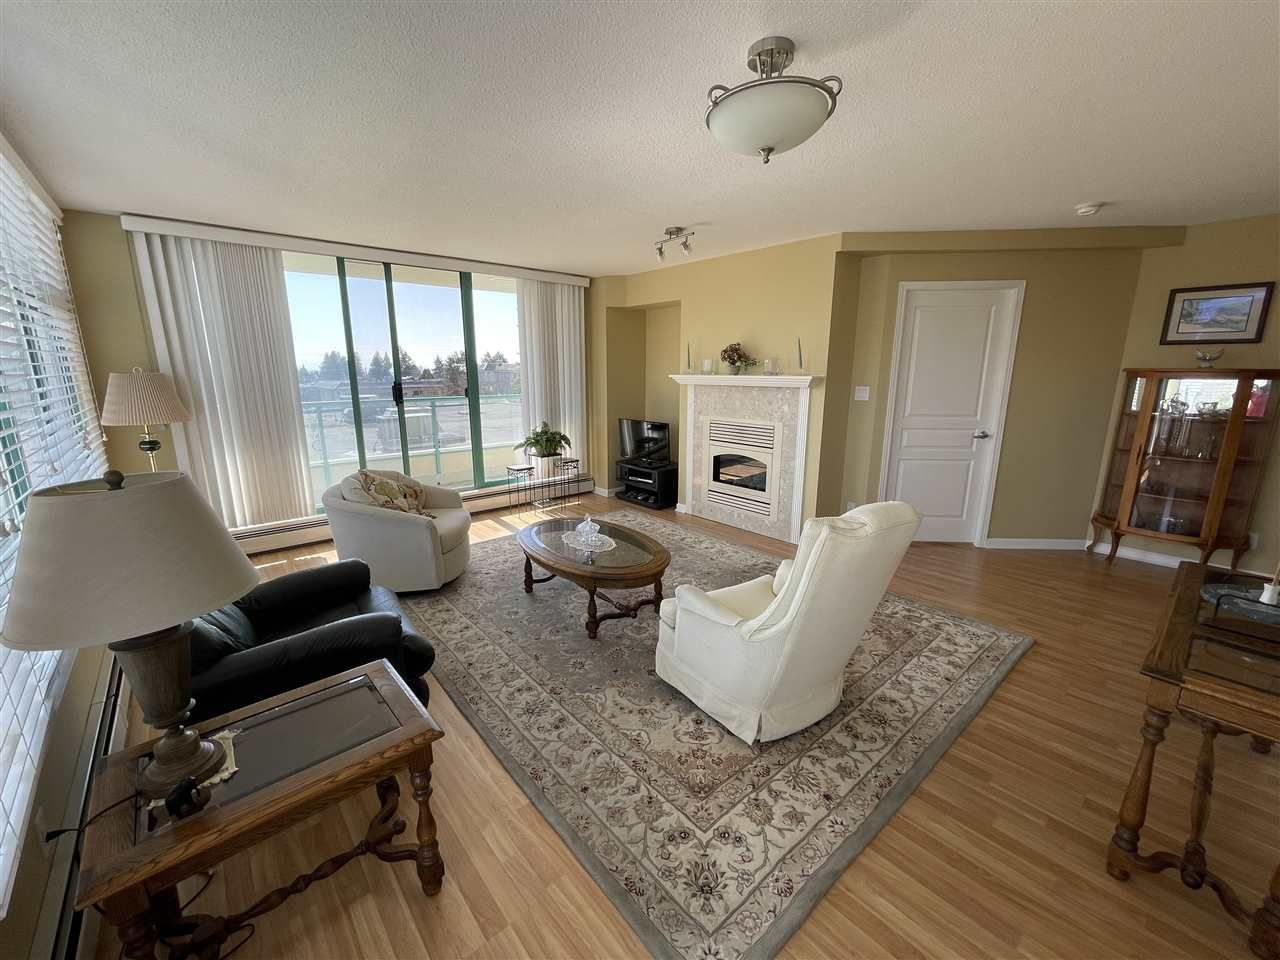 """Main Photo: 303 15466 NORTH BLUFF Road: White Rock Condo for sale in """"THE SUMMIT"""" (South Surrey White Rock)  : MLS®# R2557297"""